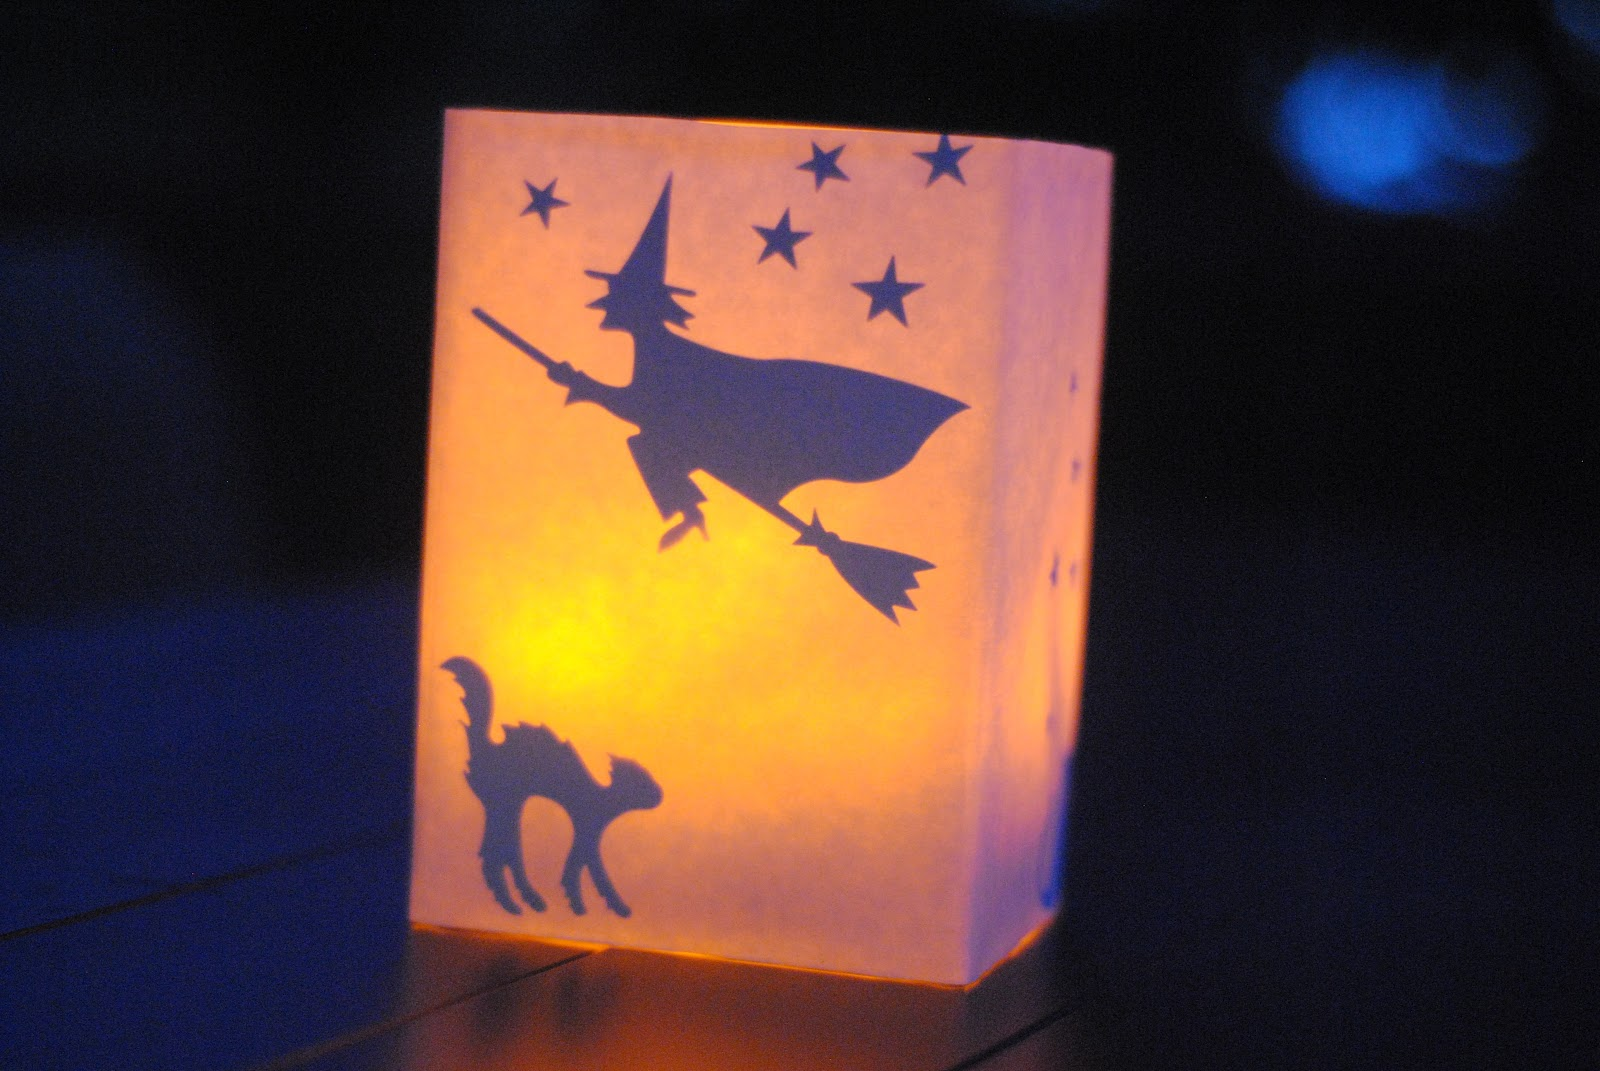 diy halloween luminaries for cheap halloween decor guest post by making lemonade - Cheap Halloween Decor